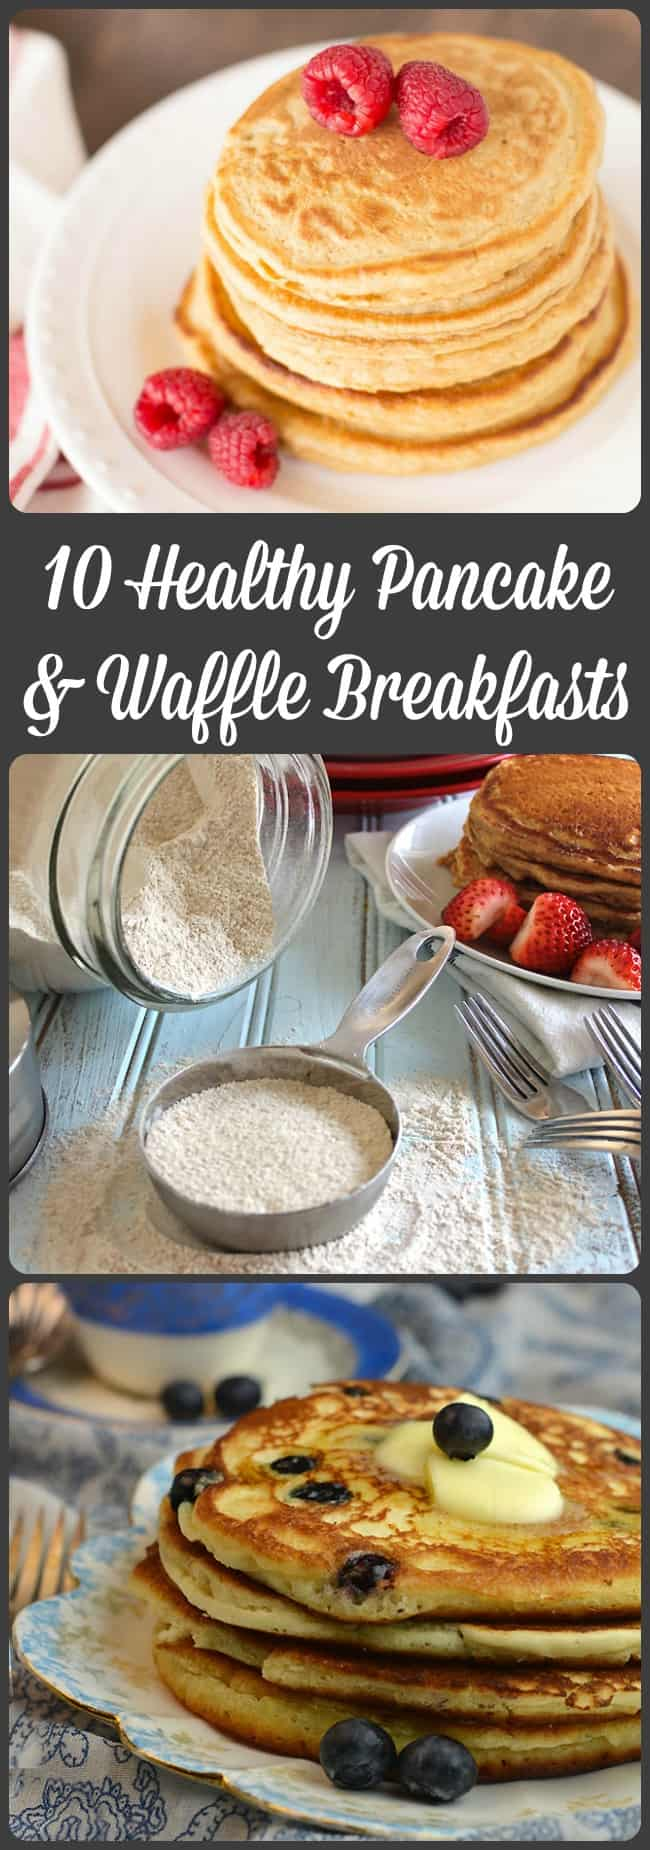 10 Healthy Pancake and Waffle Breakfasts